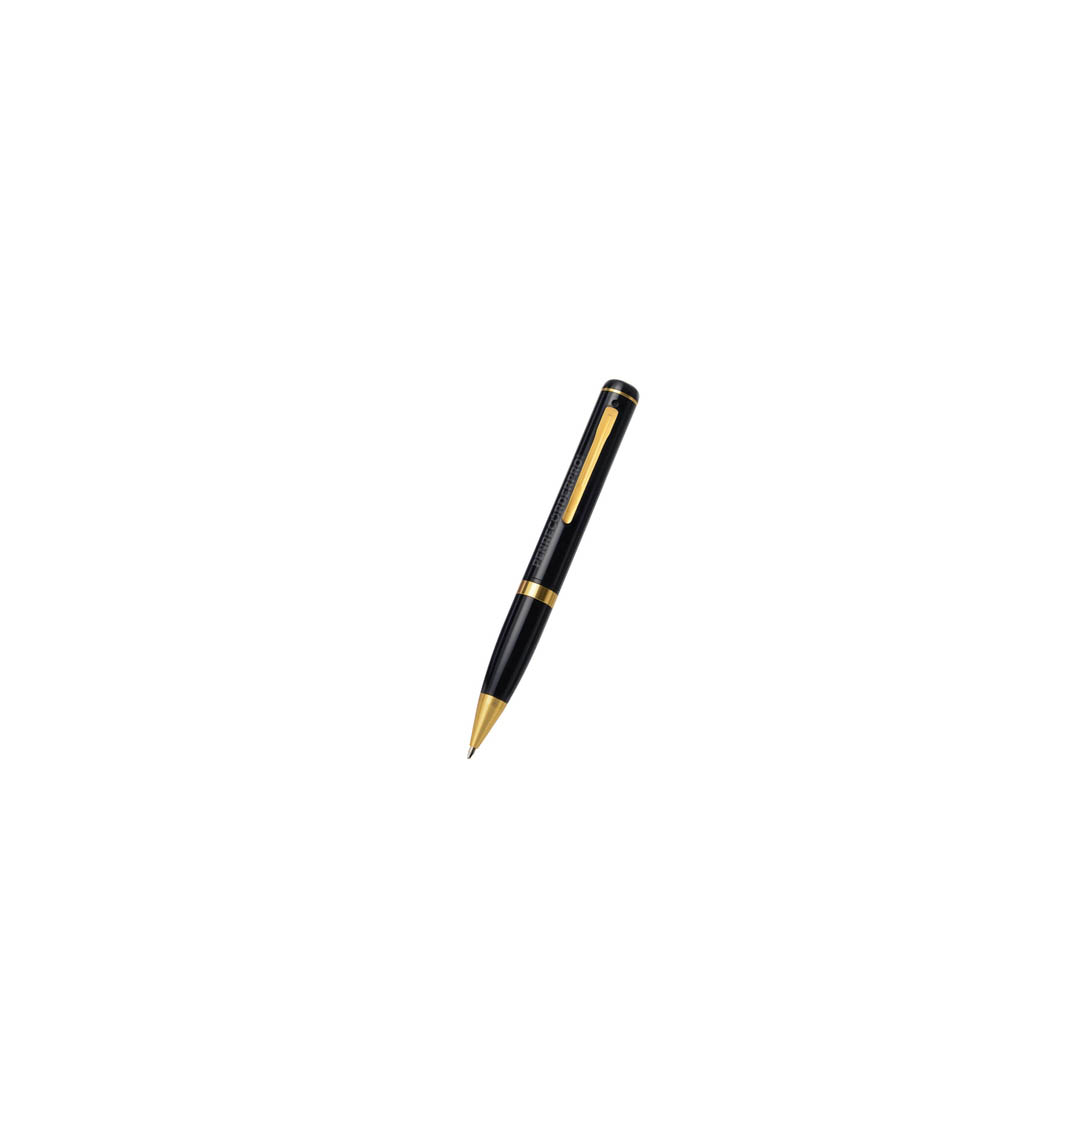 Spy Pen Hidden Camera with HD Quality Audio/Video Recording SD card support